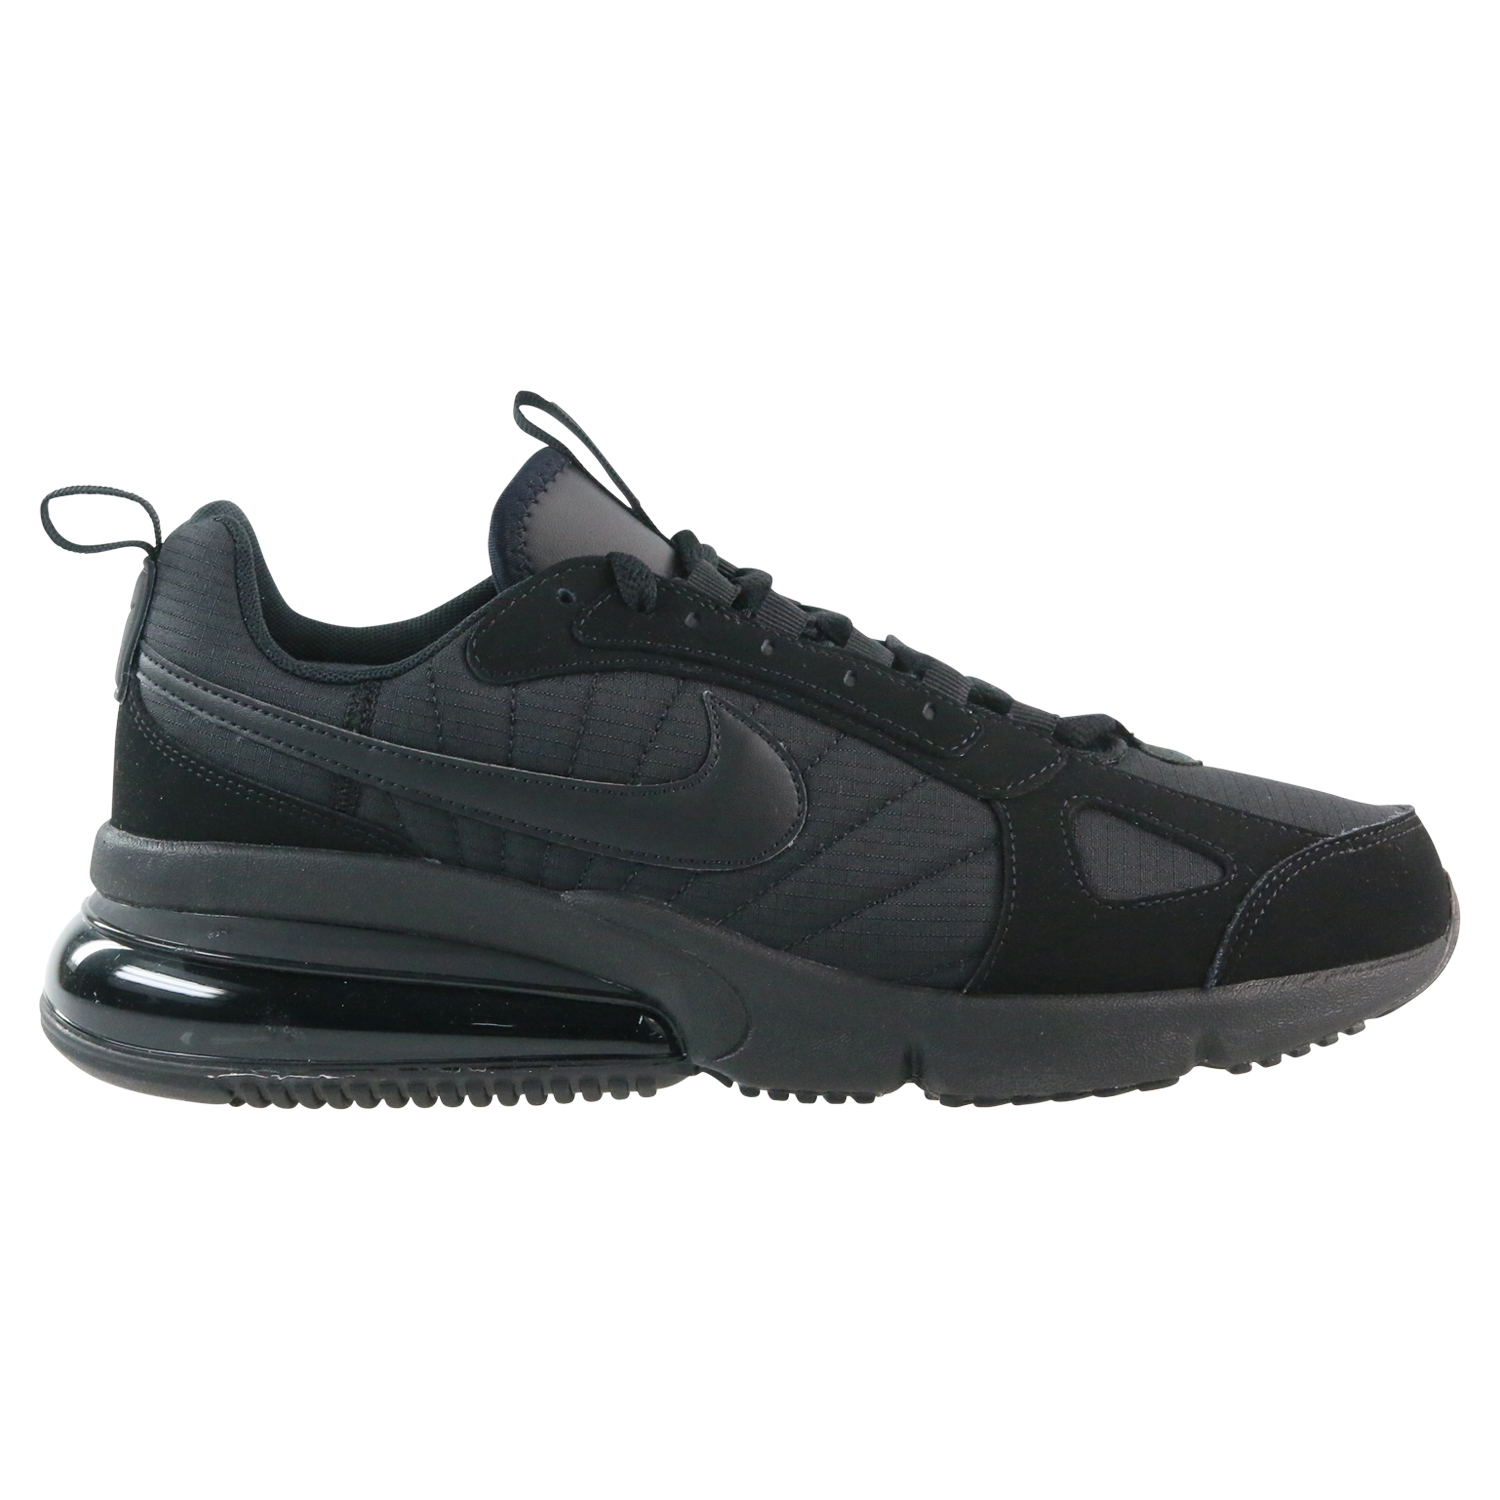 shoes for cheap best prices cheap for sale Details zu Nike Air Max 270 Futura Sneaker Schuhe Herren Schwarz AO1569 005